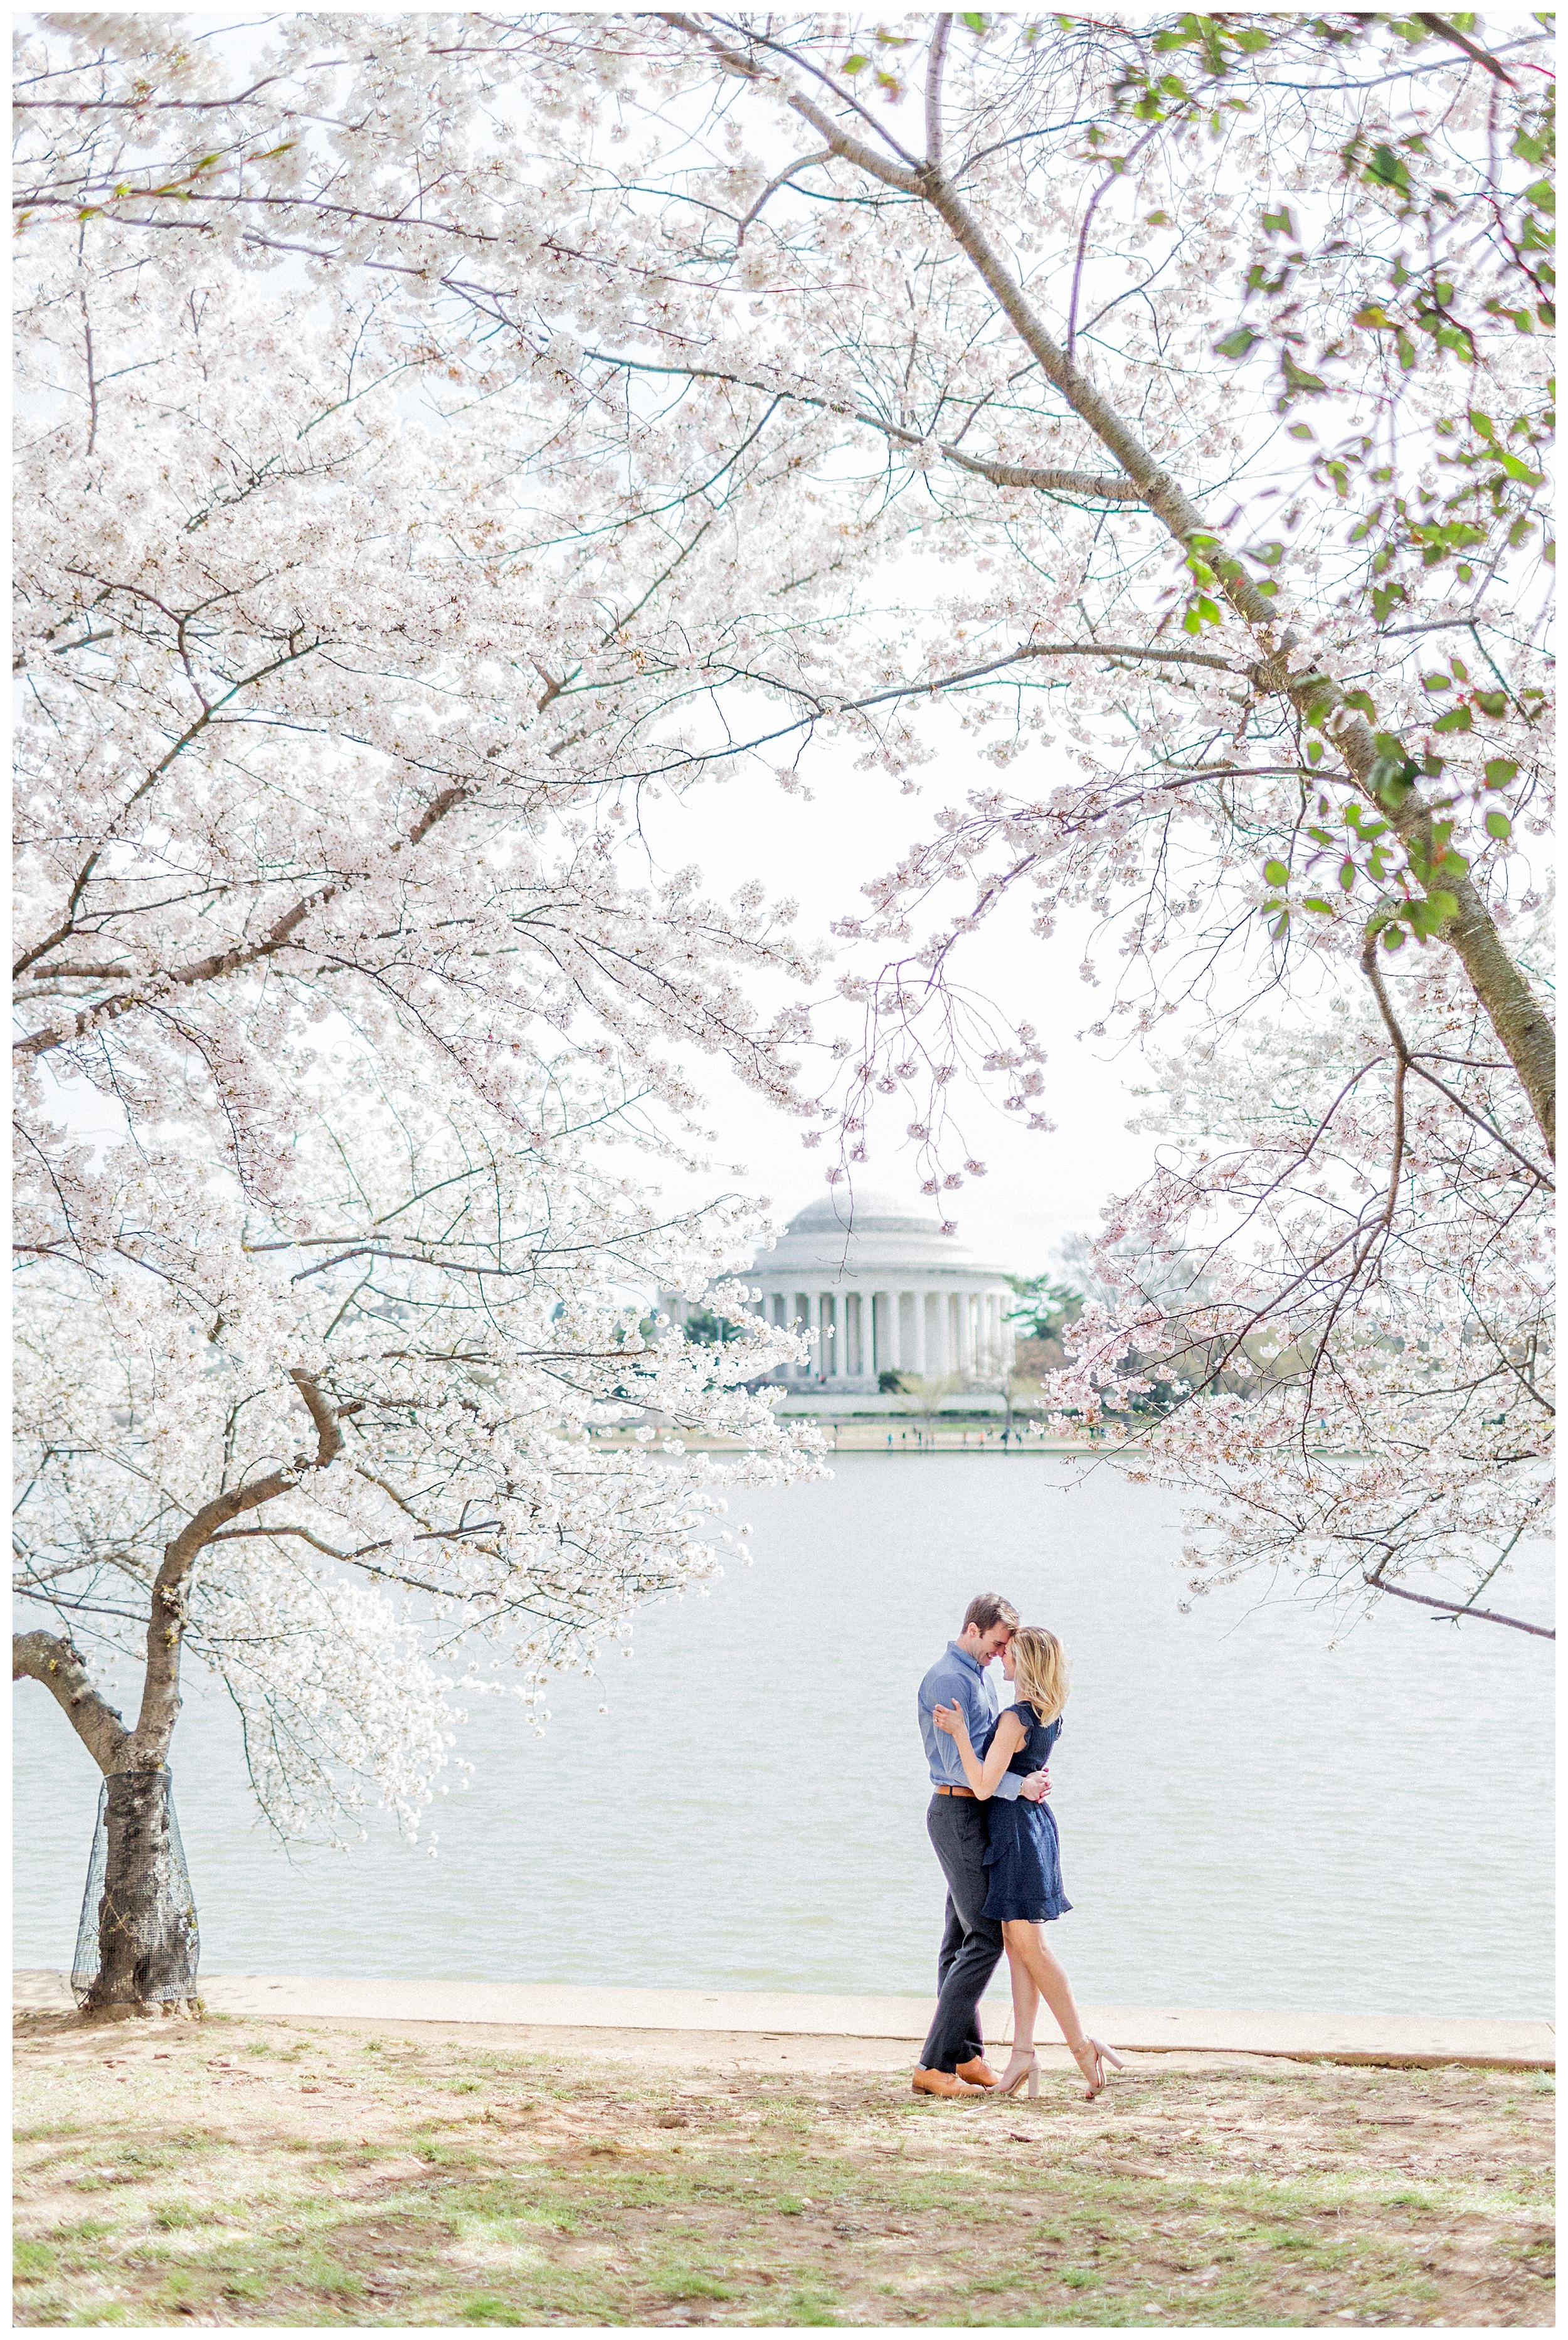 District of Columbia Cherry Blossom Engagement Session_0035.jpg